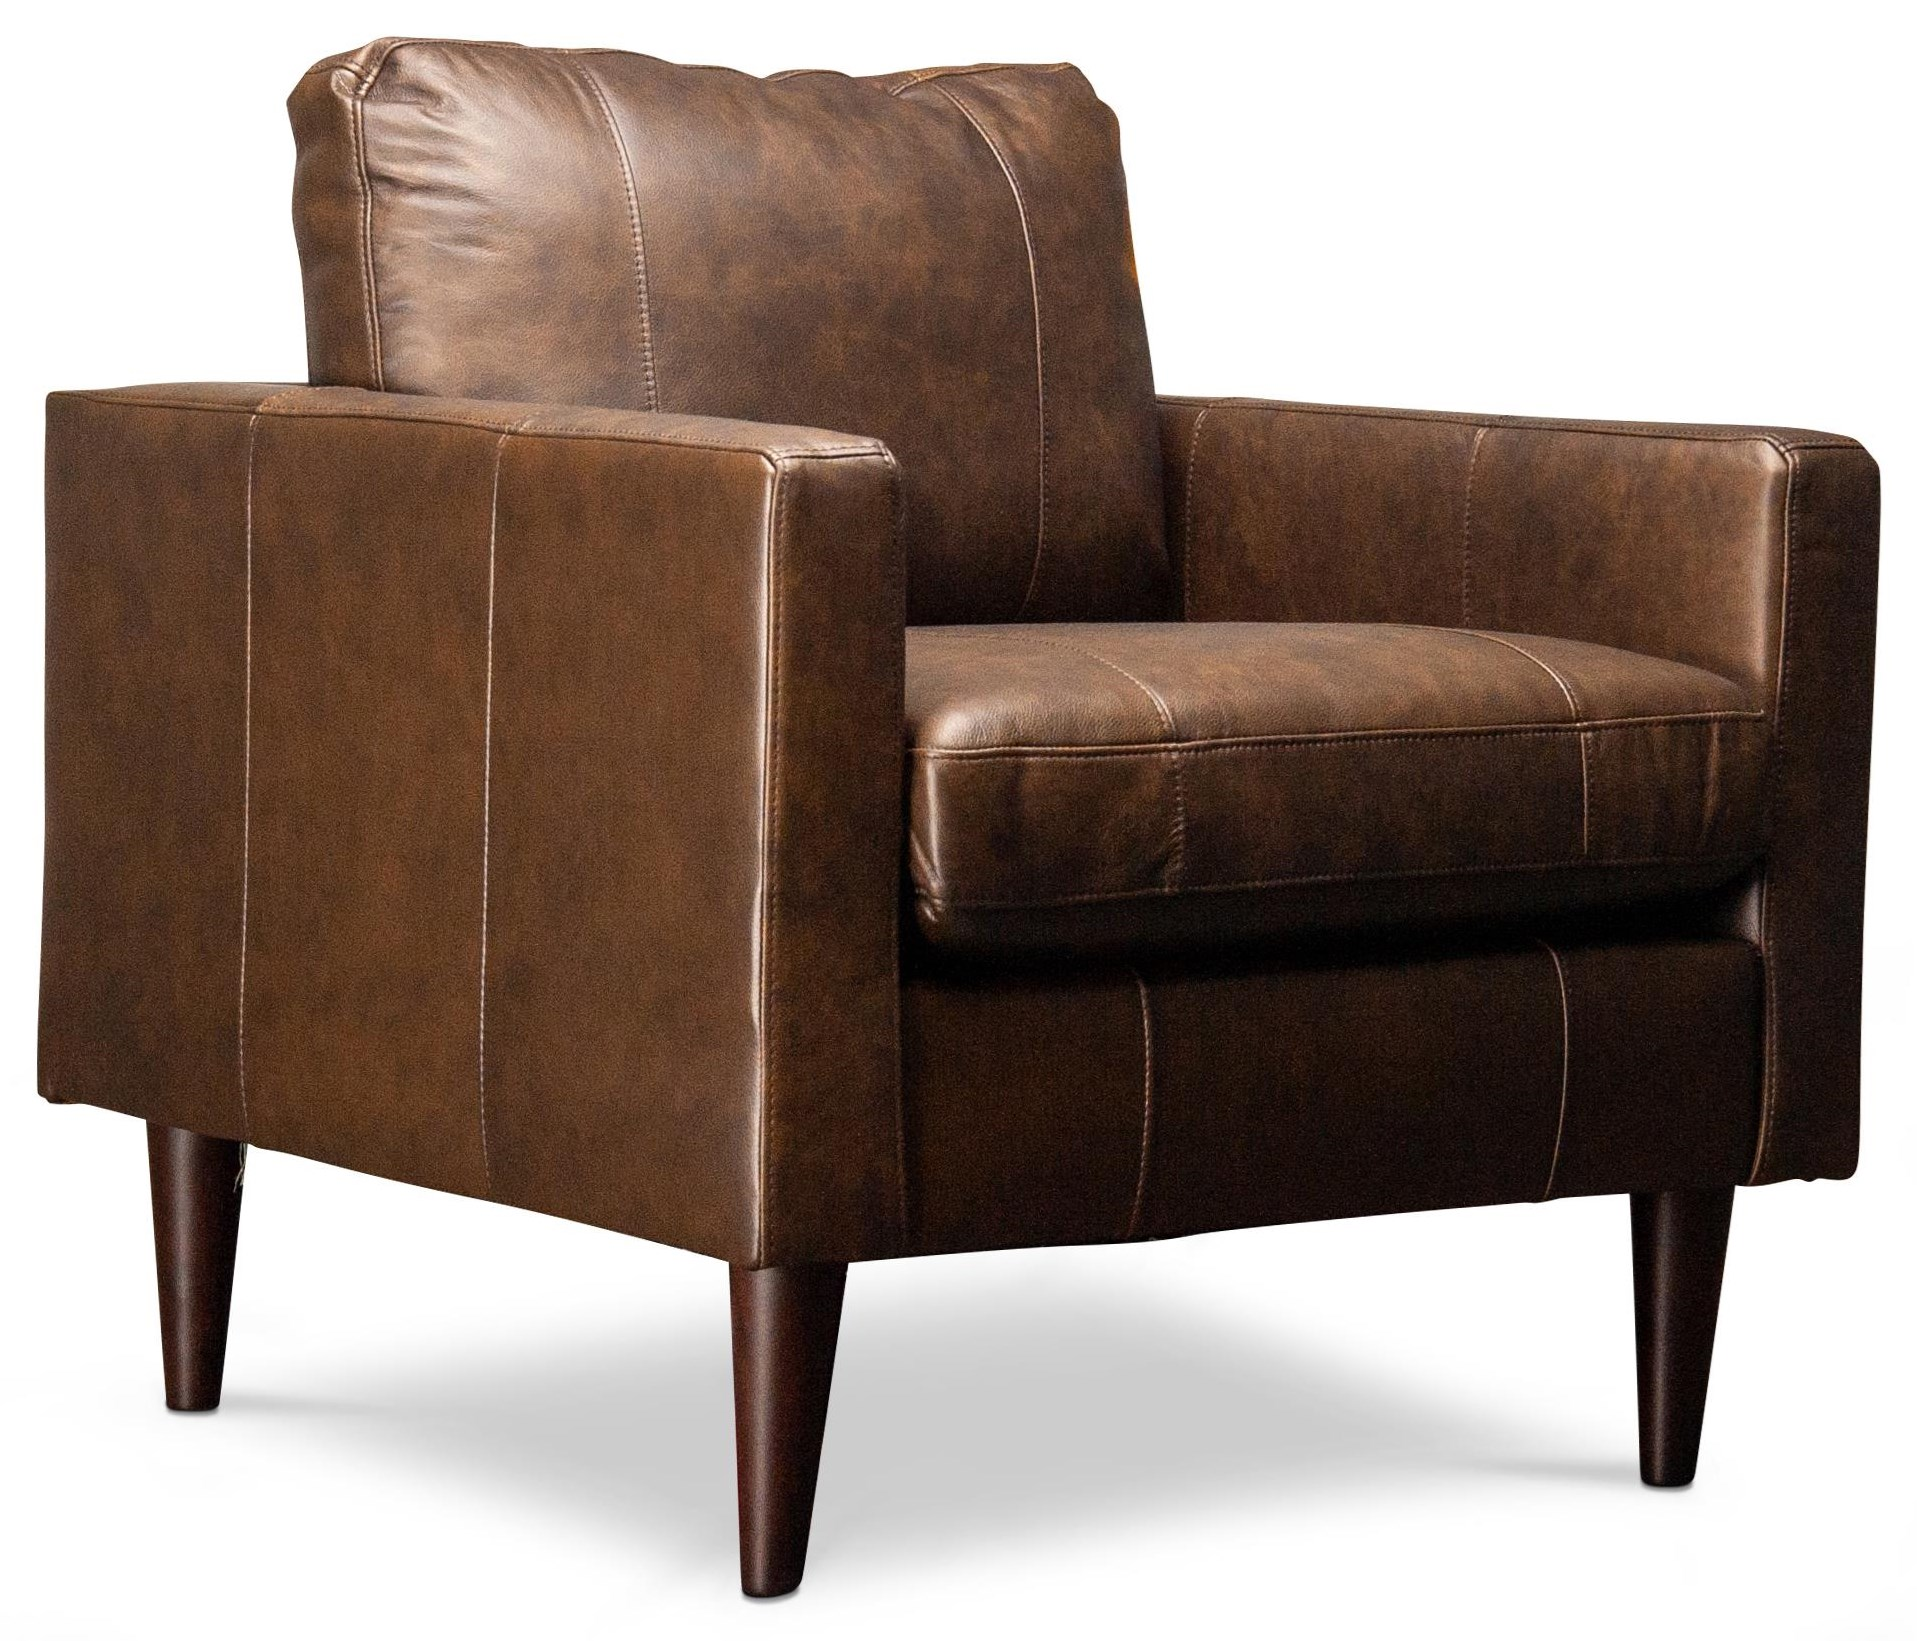 Madelyn Madelyn Leather Chair by Best Home Furnishings at Morris Home